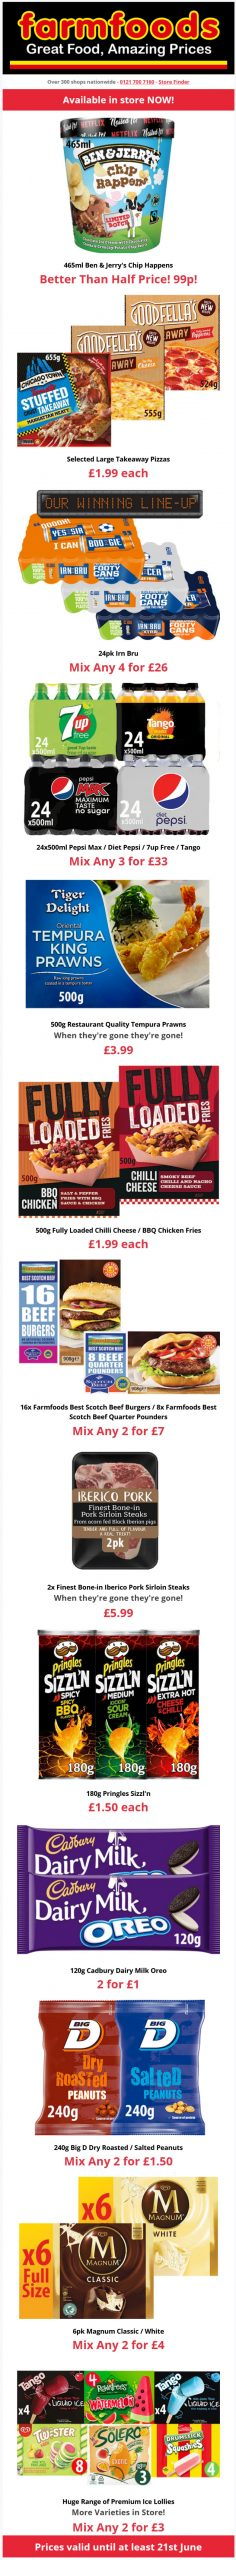 Farmfoods Offers from 9/6/2021 Preview